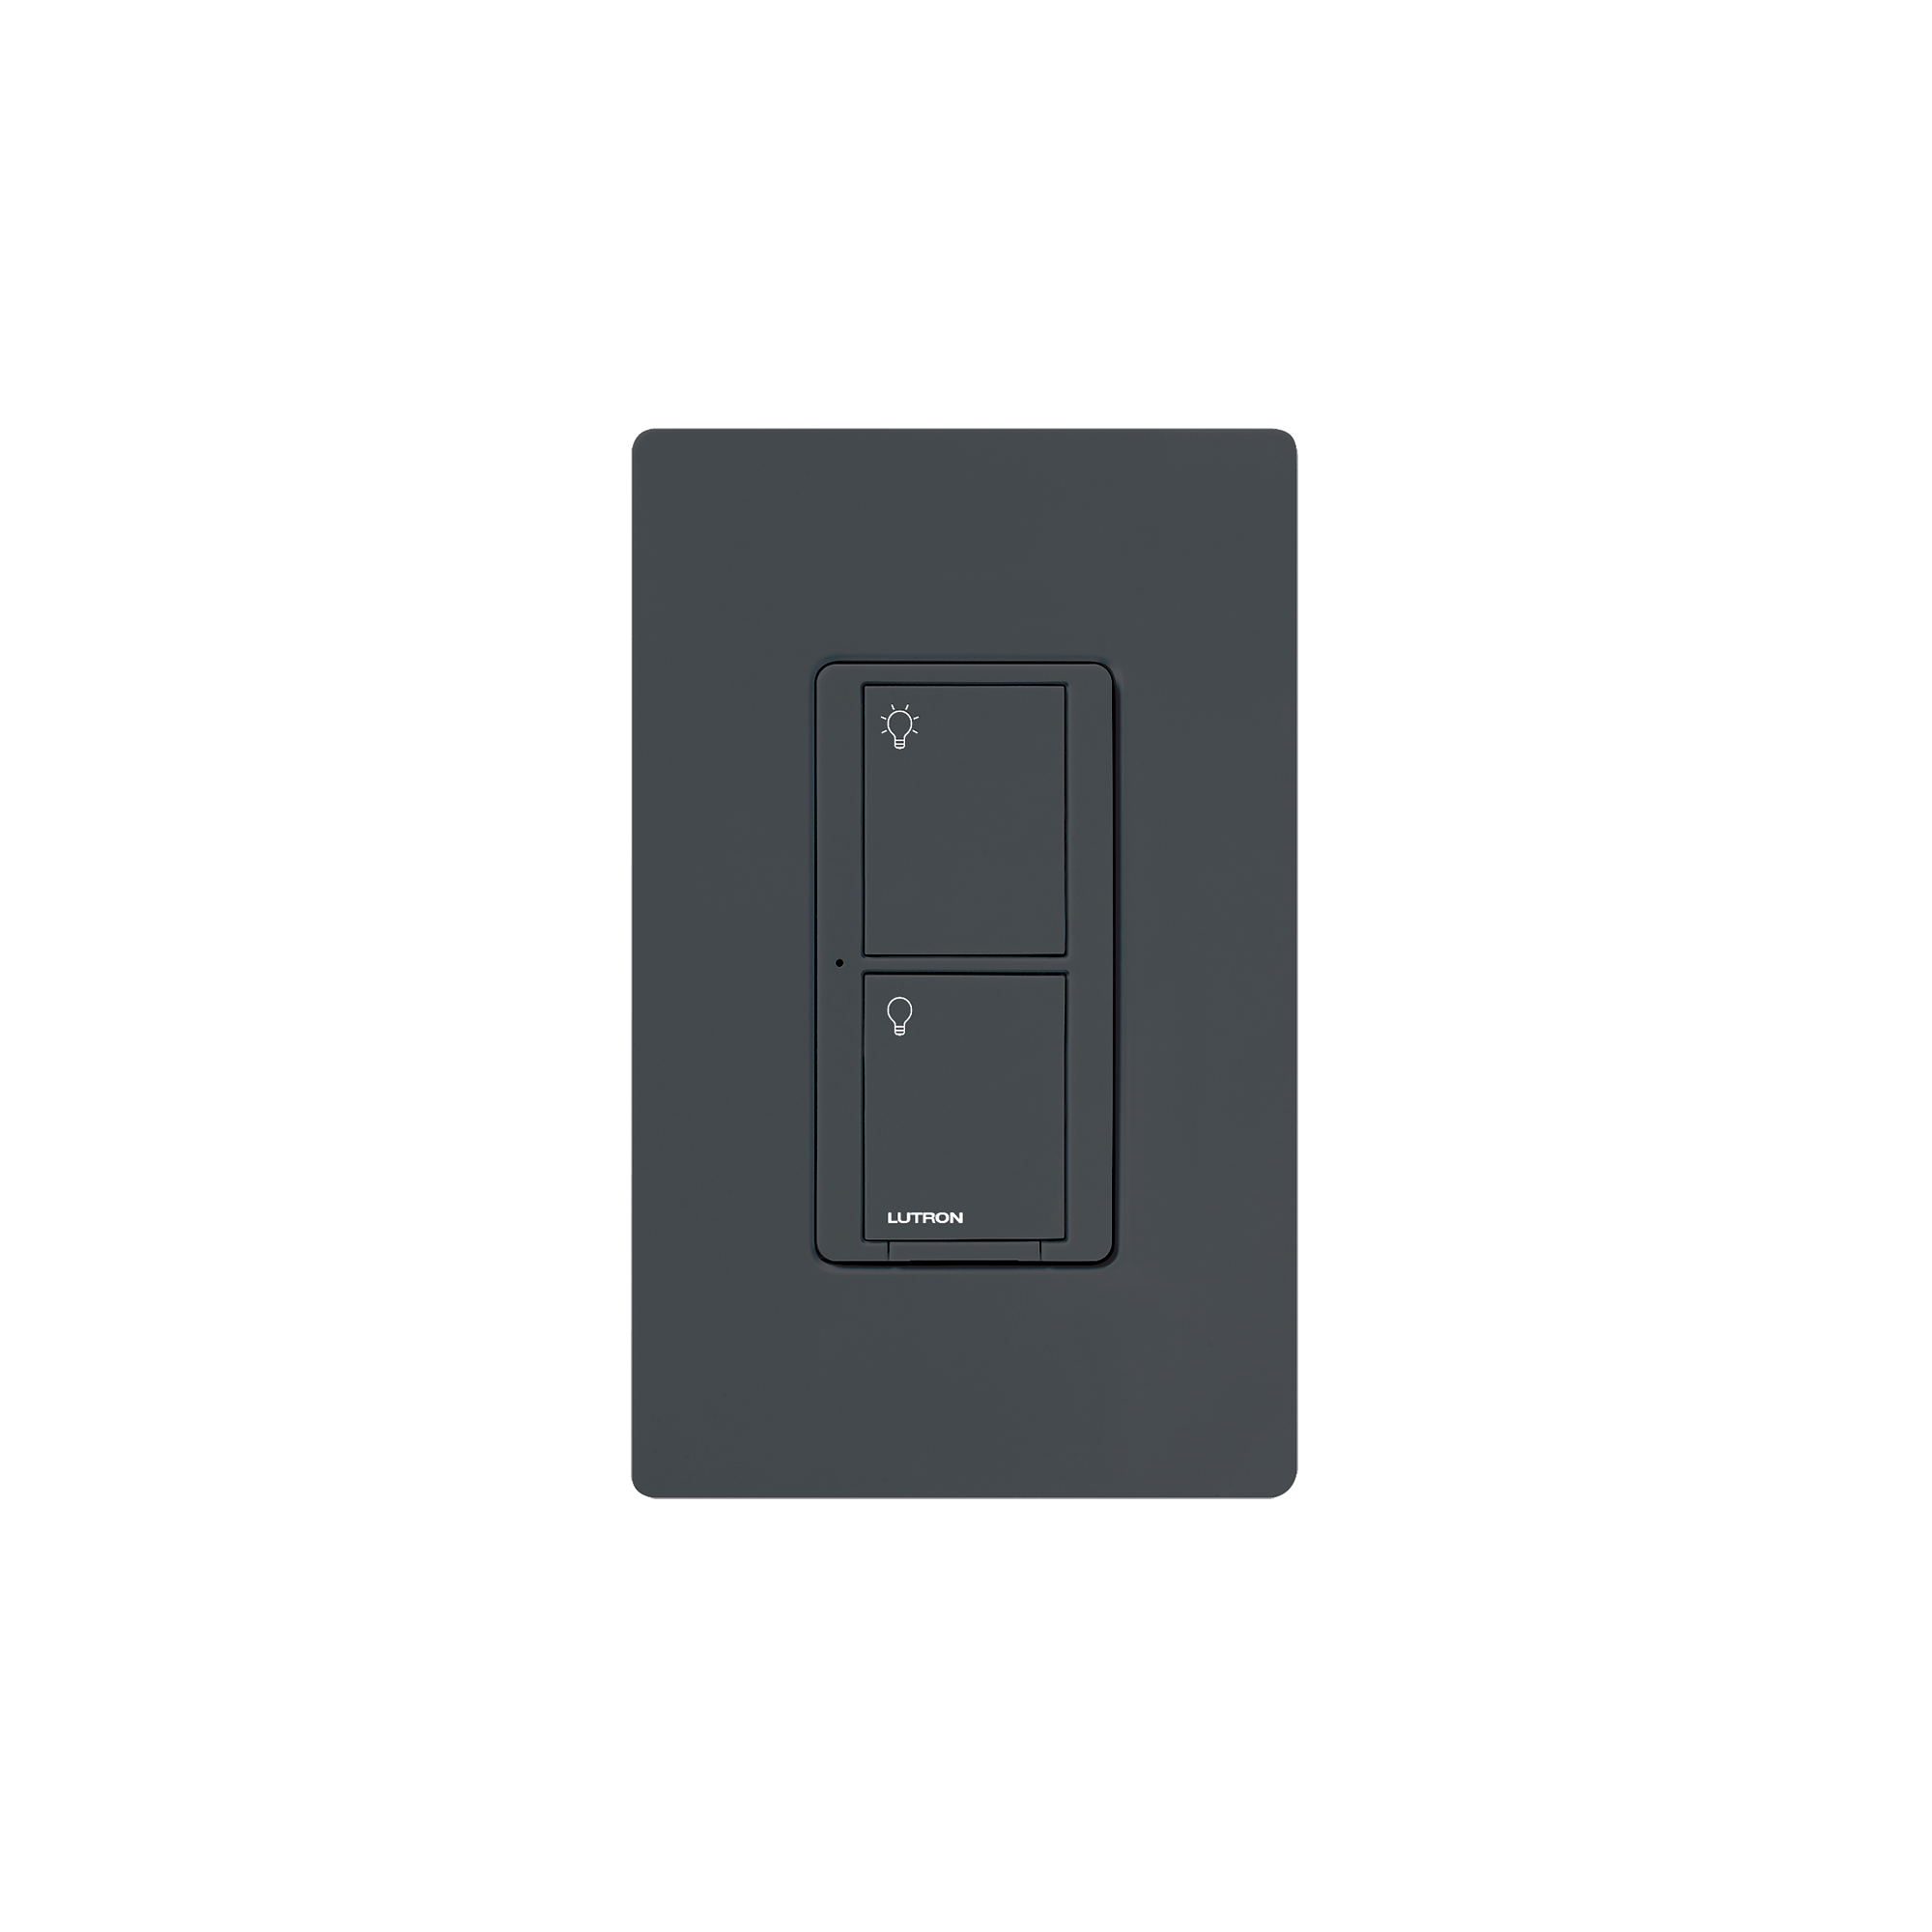 INTERRUPTOR SWITCH On/Off PRO COLOR NEGRO